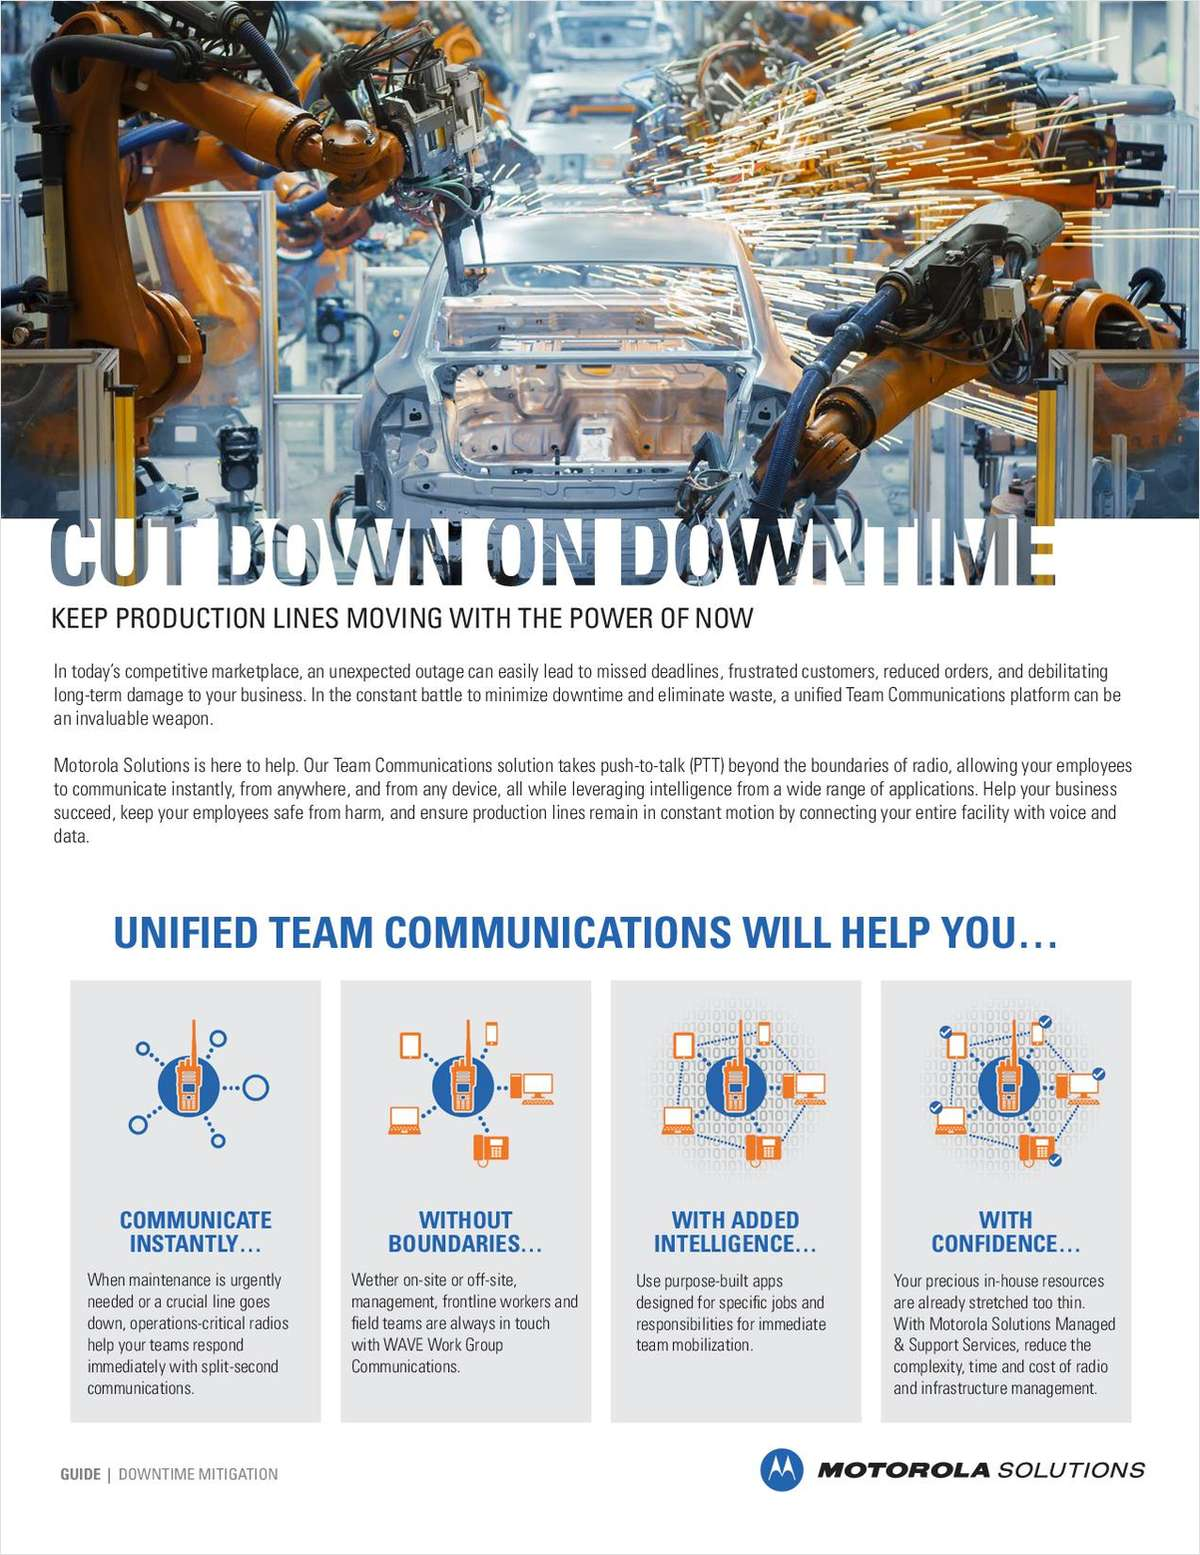 Cut Down on Downtime